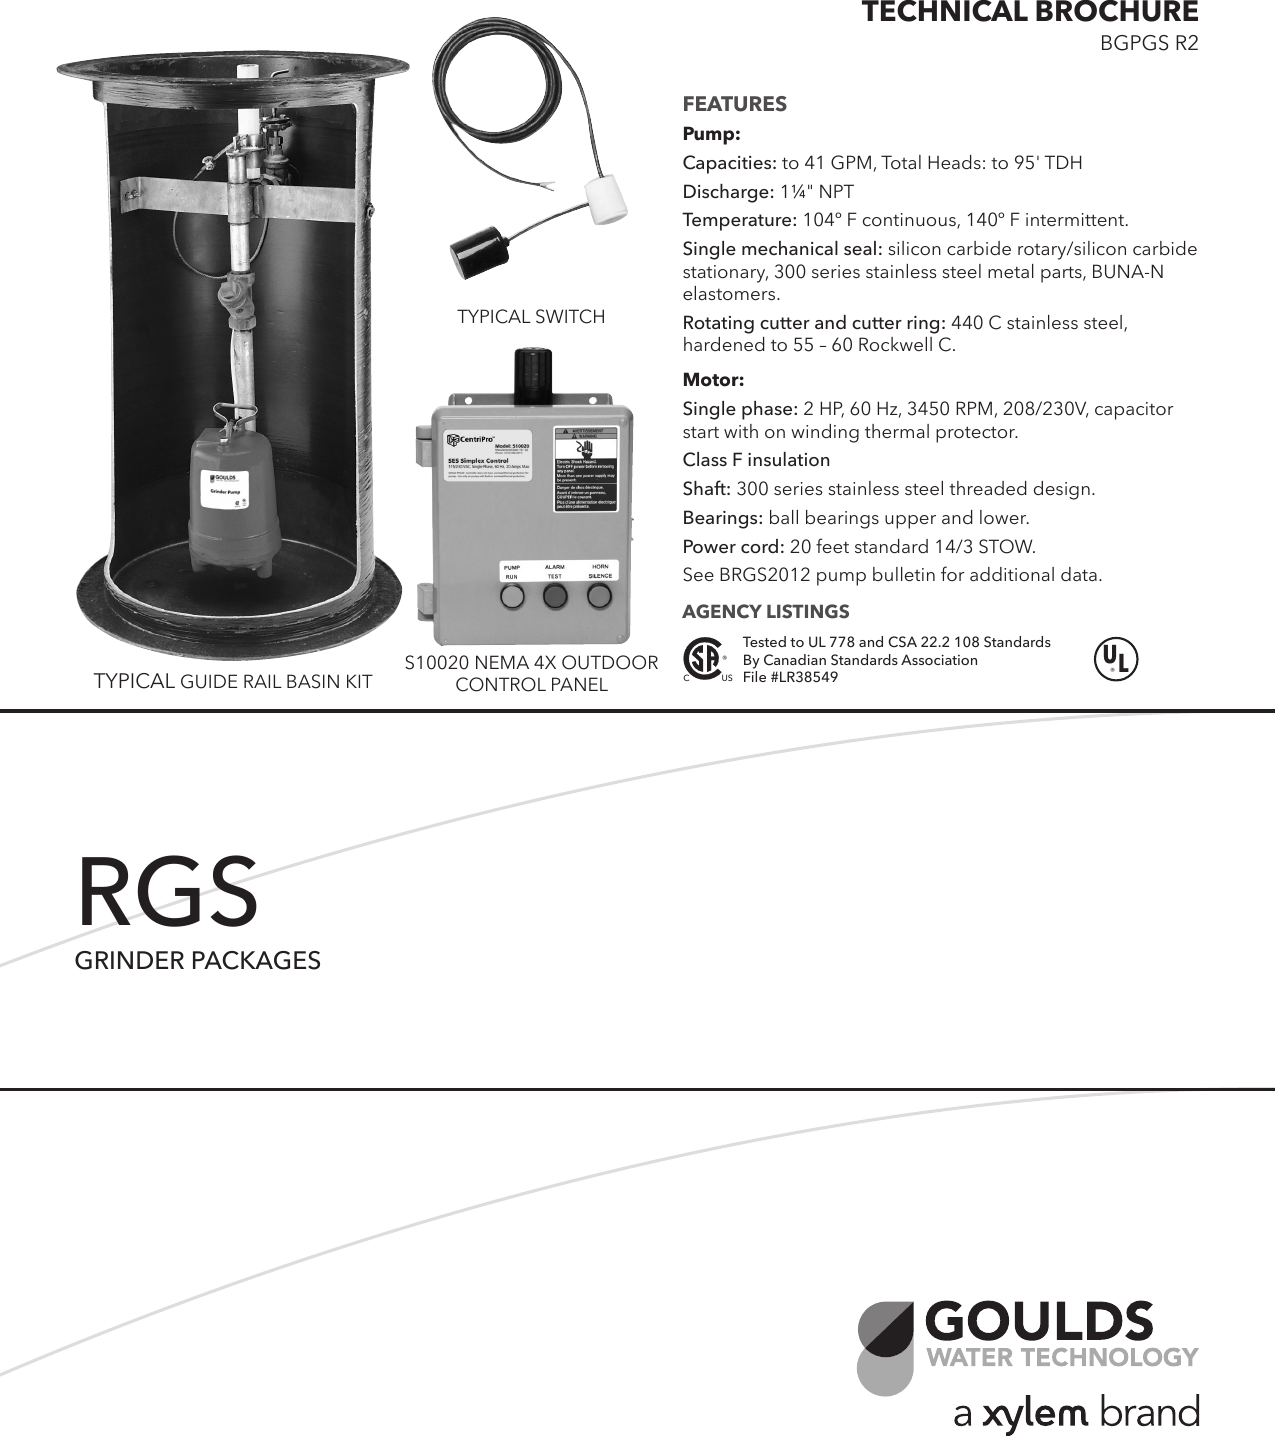 hight resolution of  control box wiring diagram on 538653 1 goulds rgs2012 grinder pump kits technical brochure on